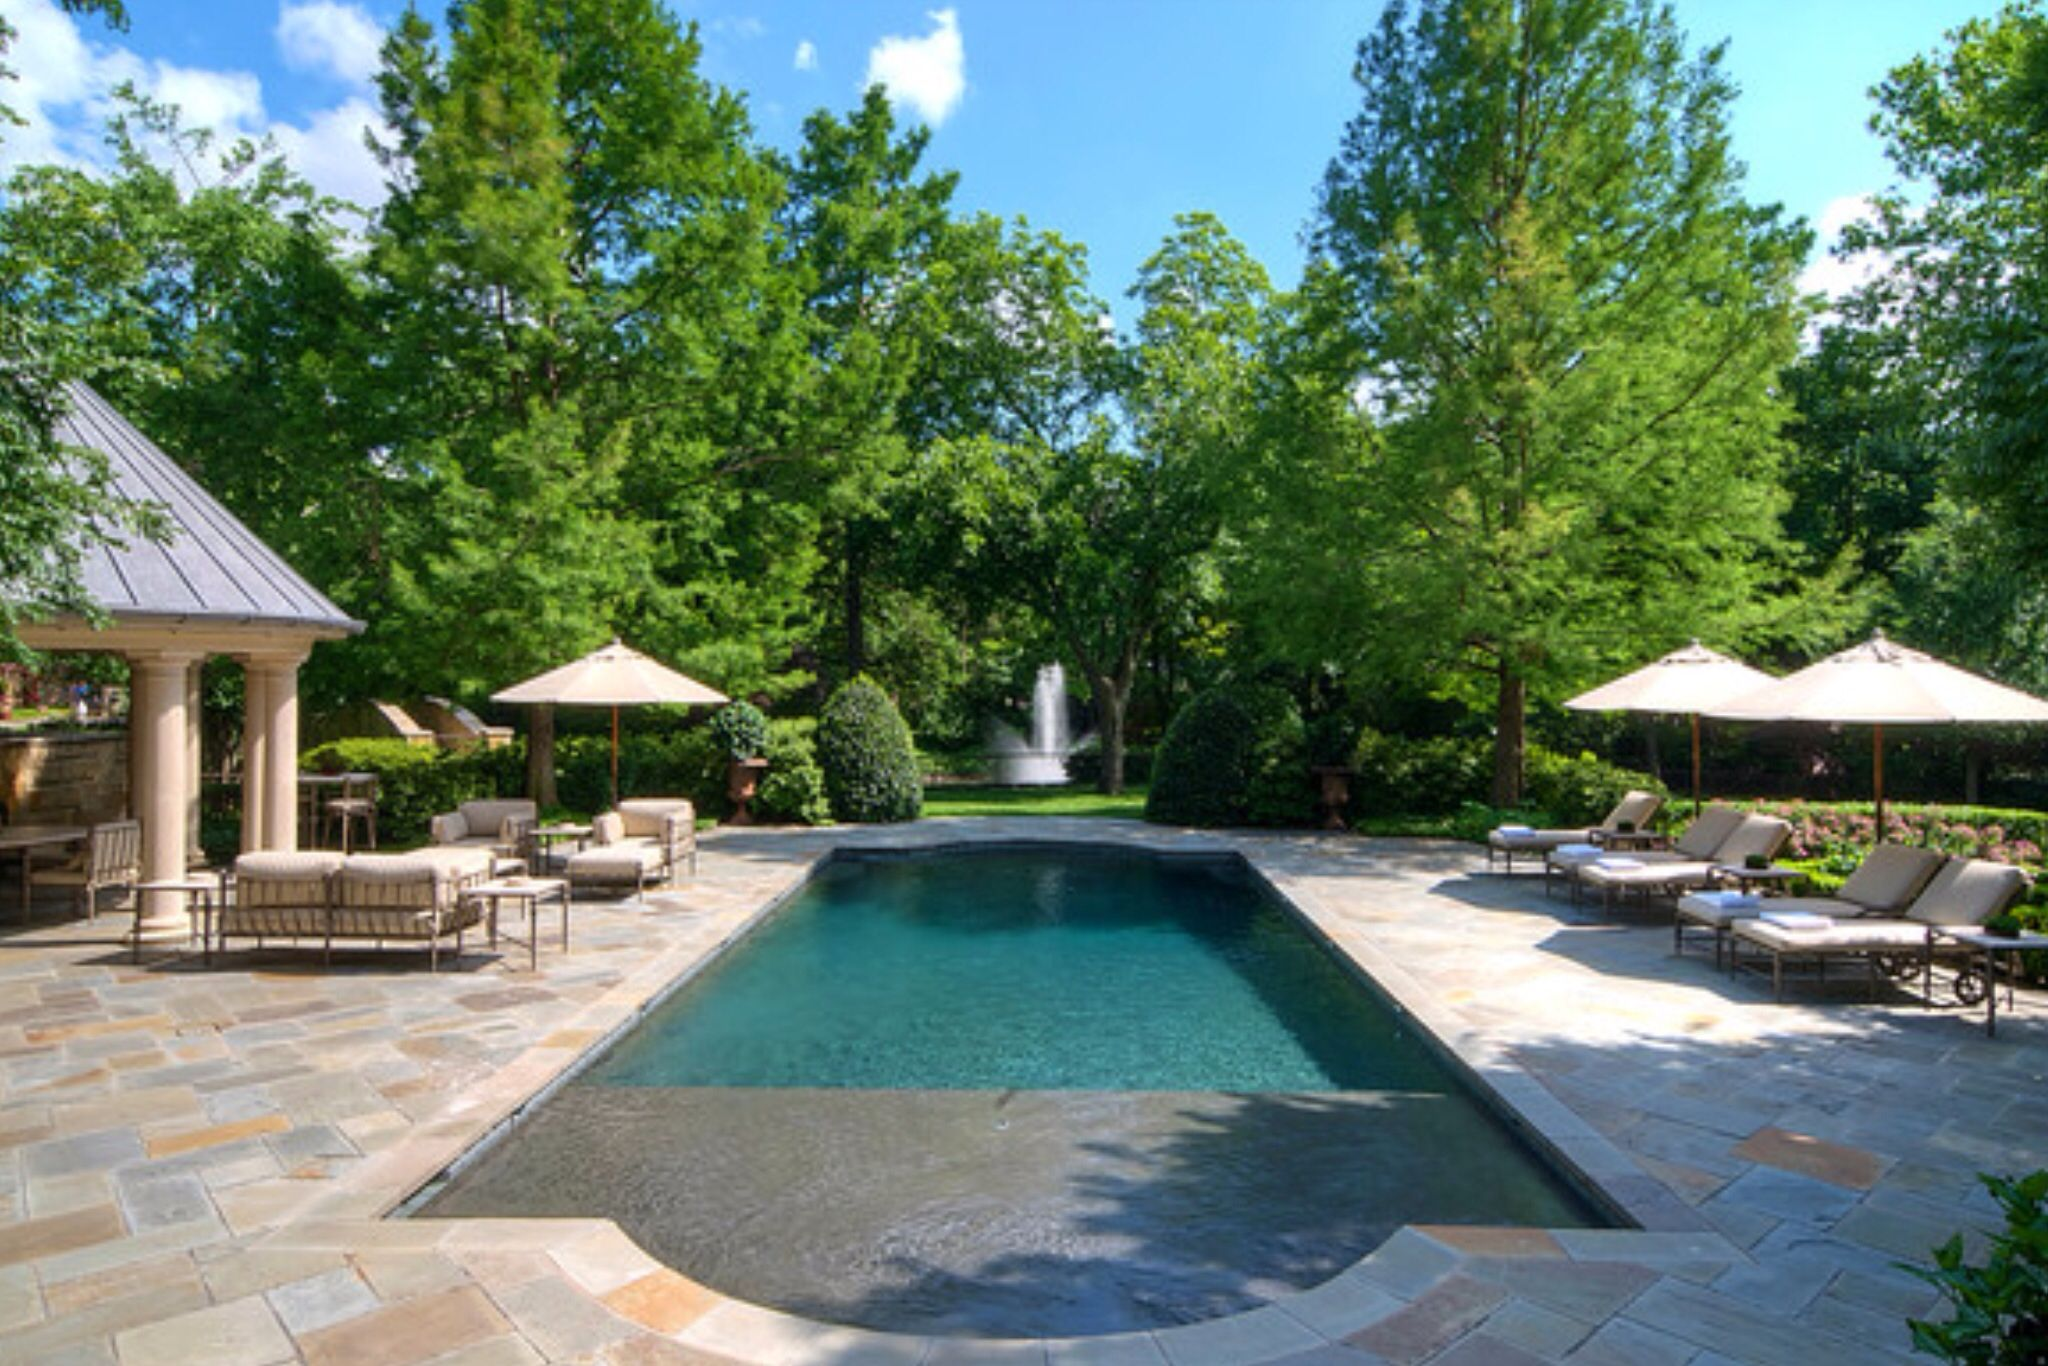 Decking ultimate pools pinterest for Pool design with tanning ledge